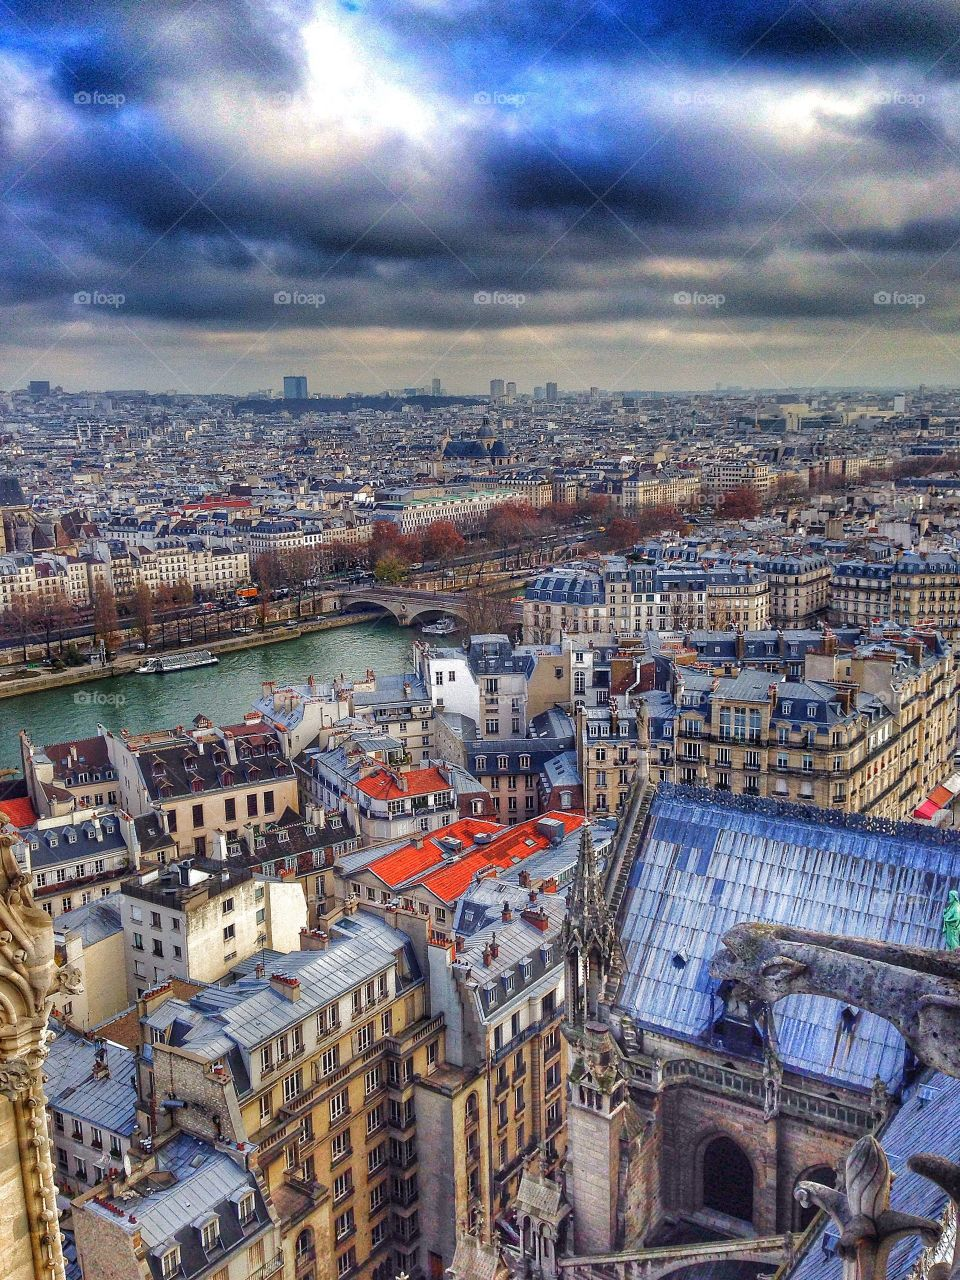 Paris, France from the Notre-Dame